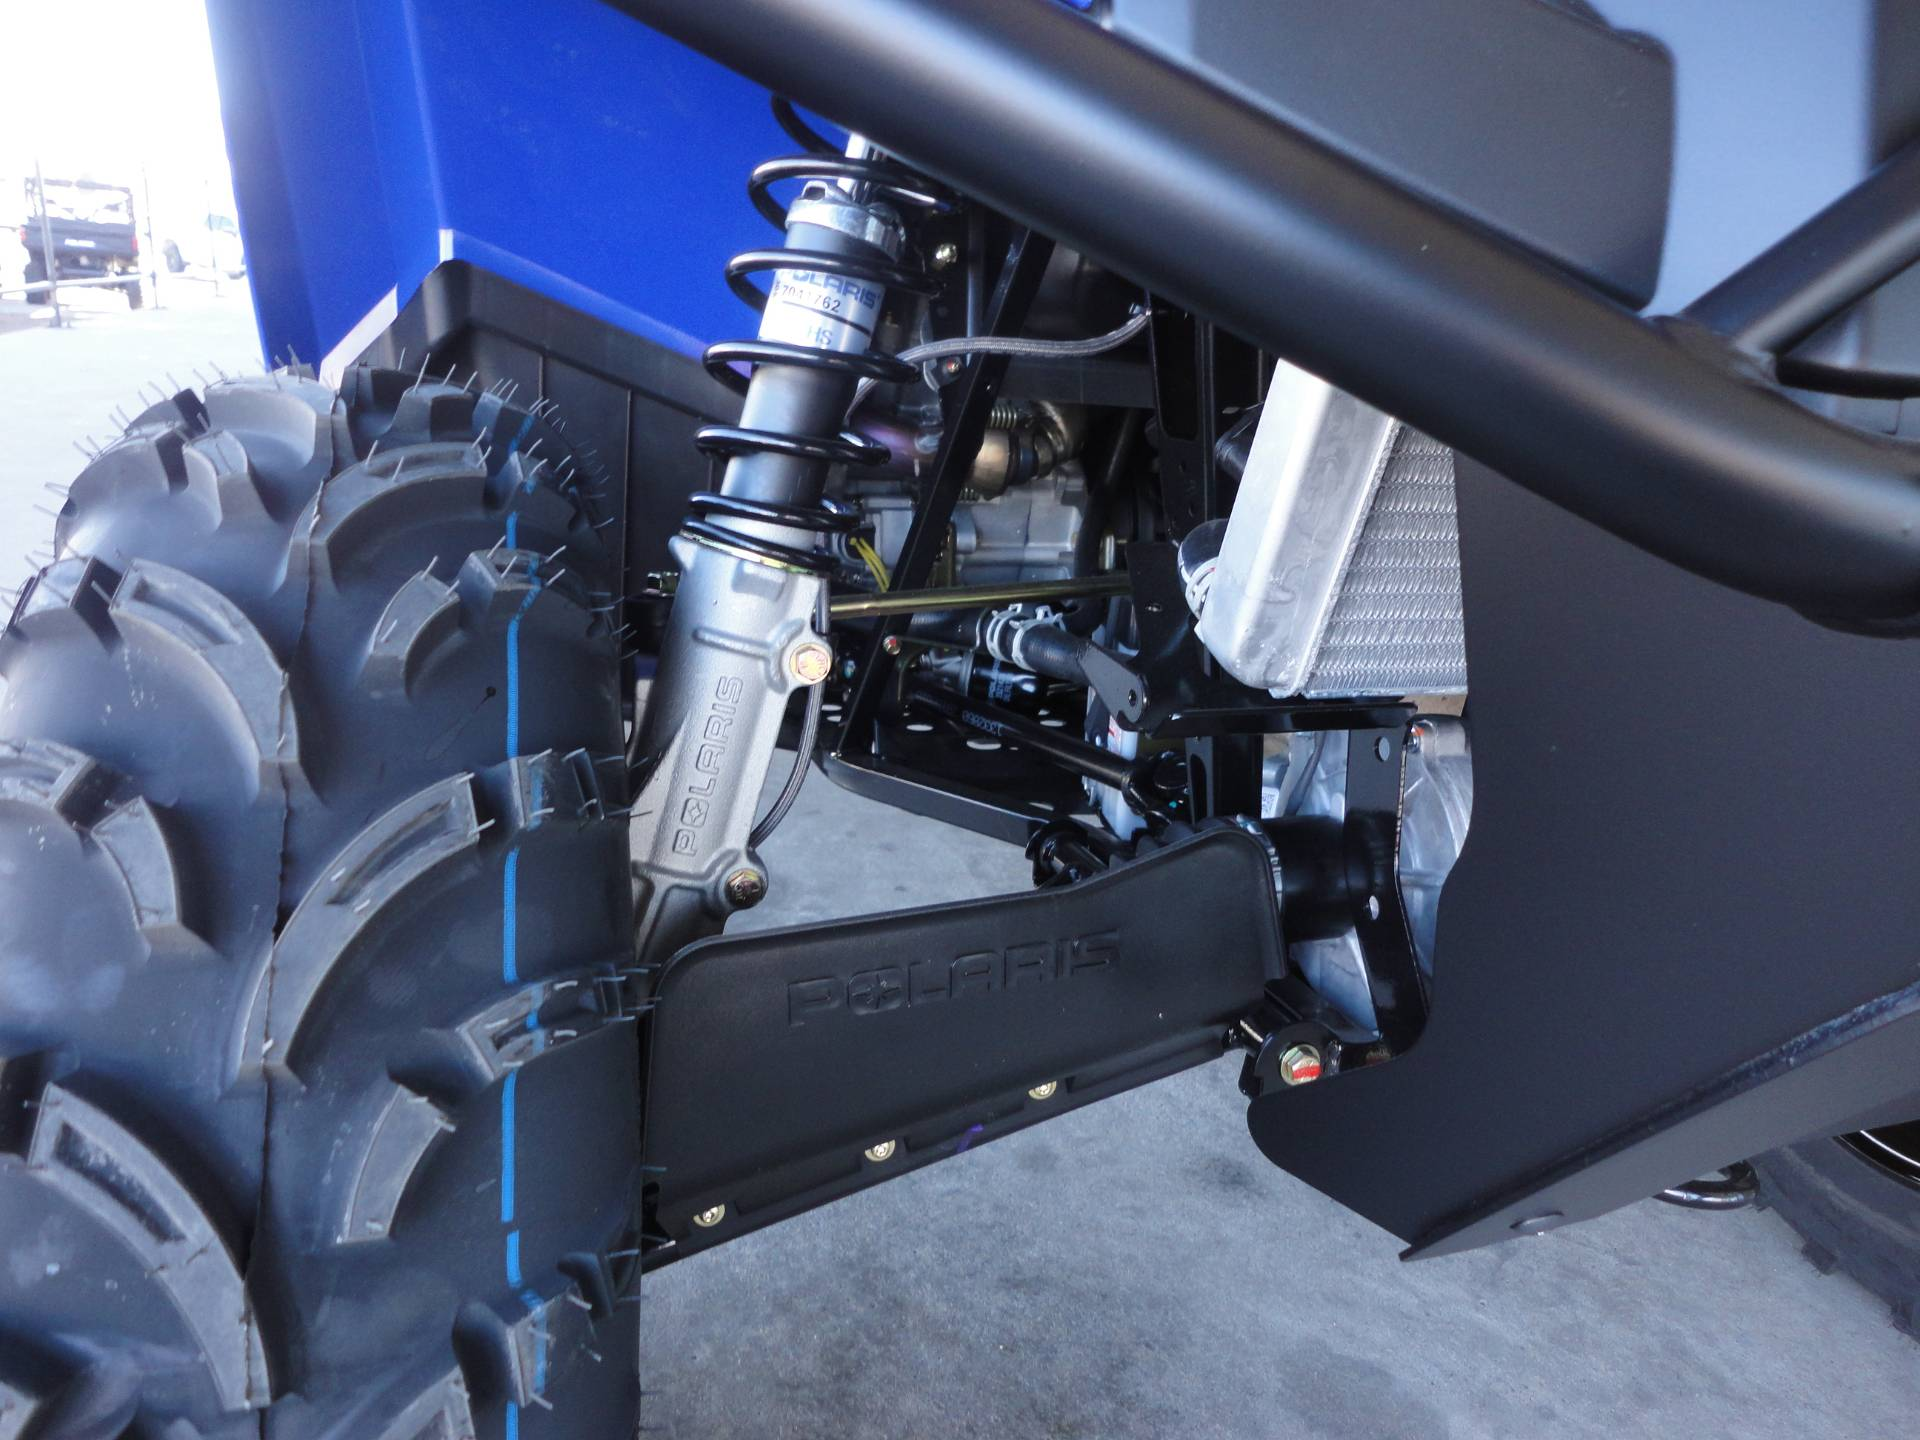 2020 Polaris Sportsman 450 H.O. Utility Package in Denver, Colorado - Photo 6